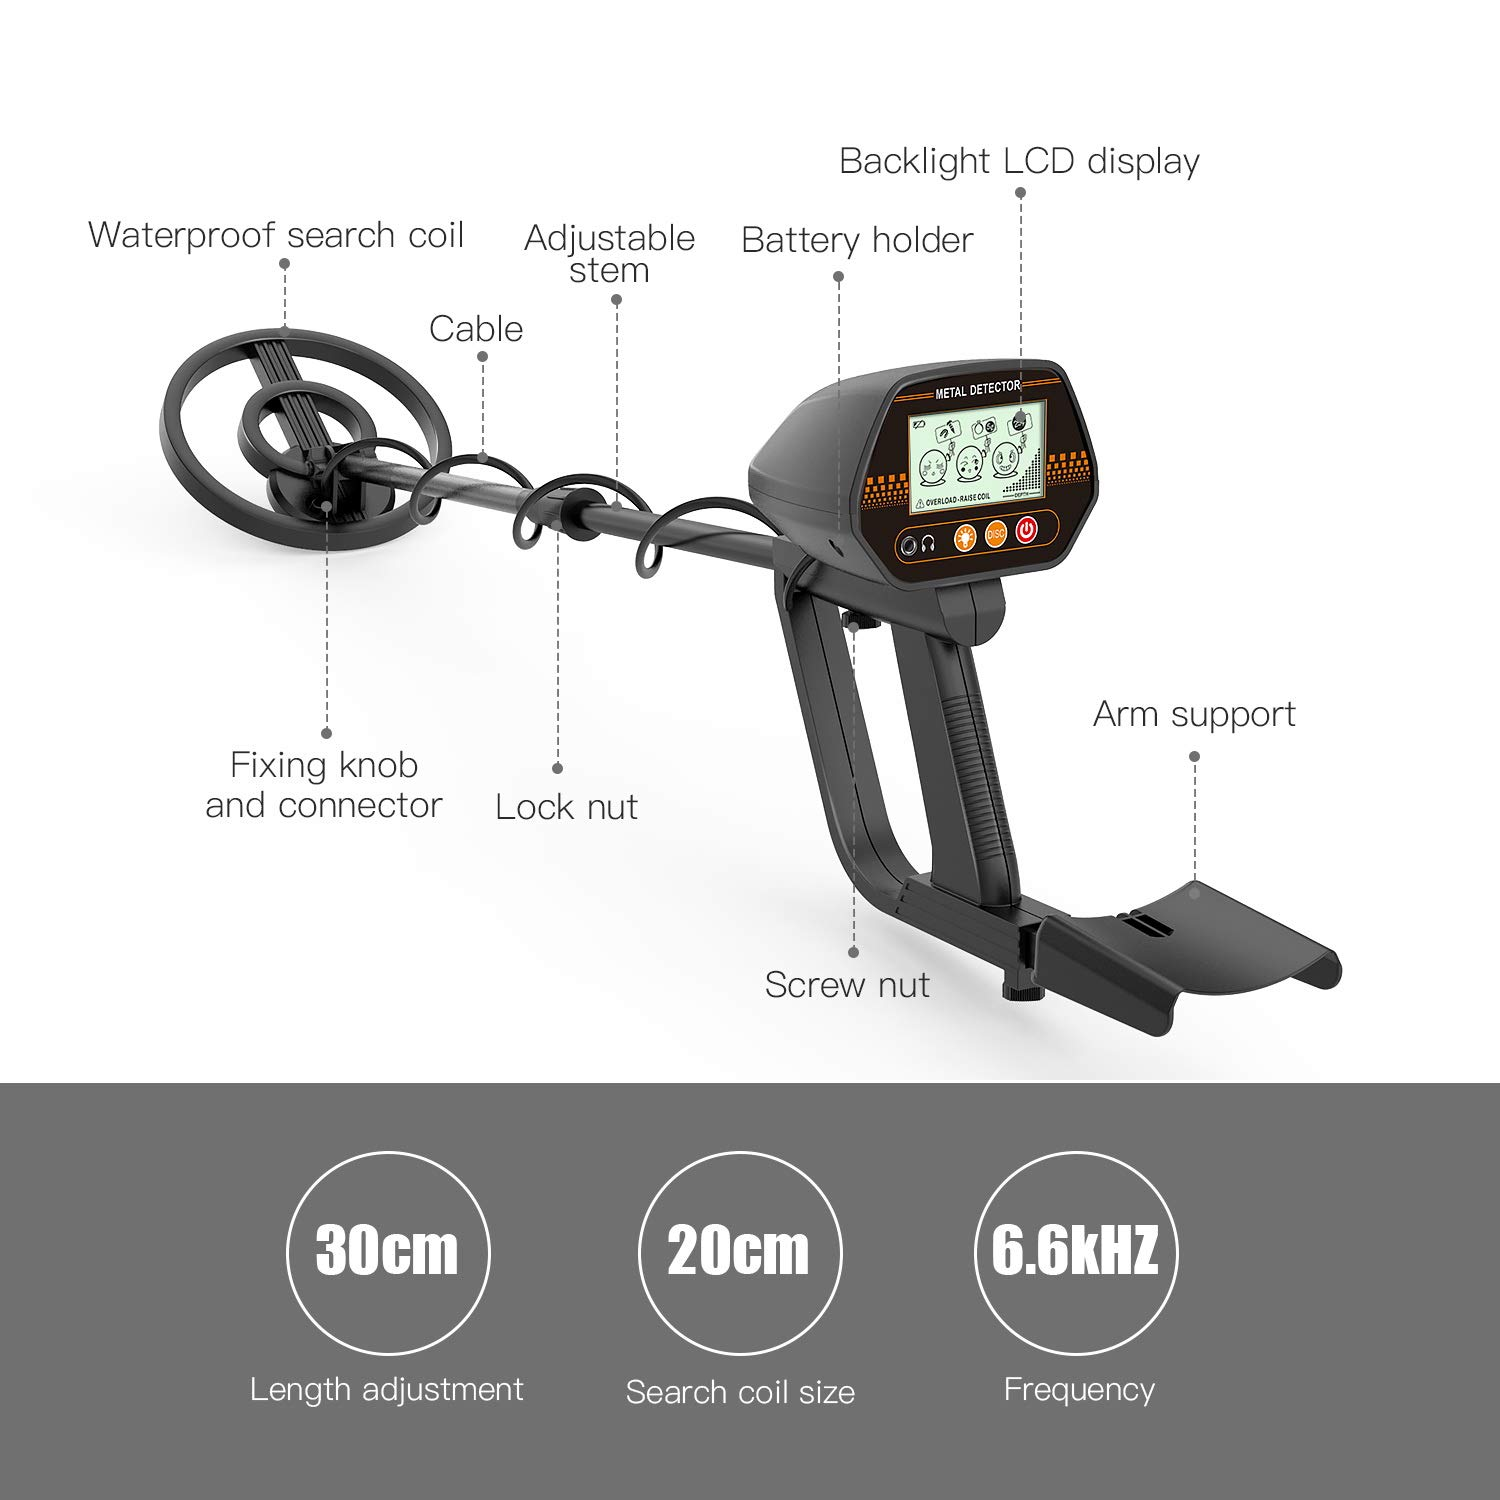 Metal Detector, 3 Modes Adjustable Waterproof Detectors 24 -45 with Larger Back-lit LCD Display, 3 Audio Tone DISC Mode – Carrying Bag and Batteries Included, Easy to Operate for Adults and Kids